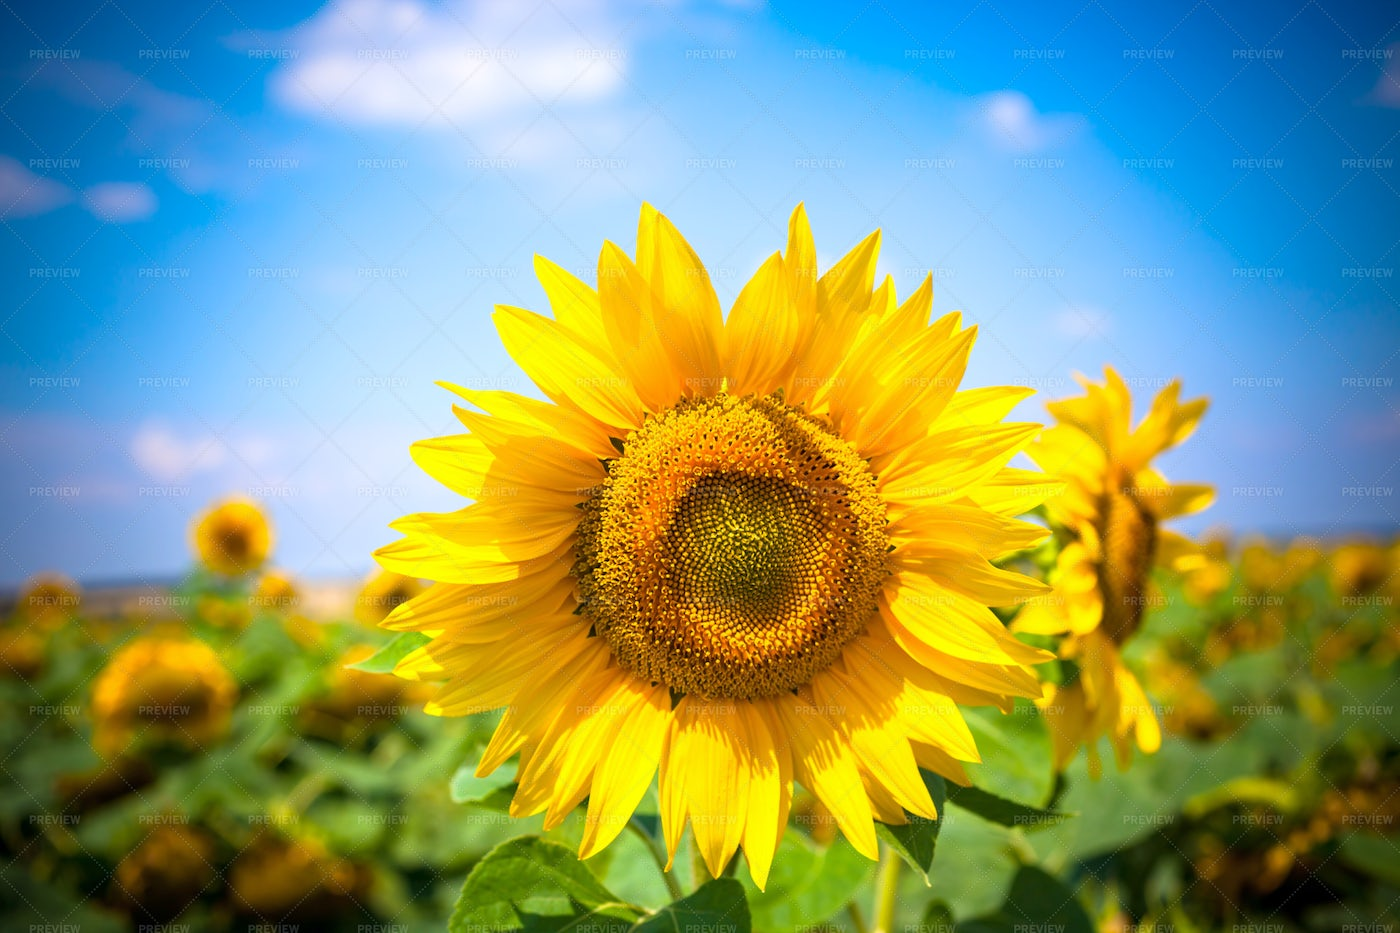 Sunflowers During Summer: Stock Photos